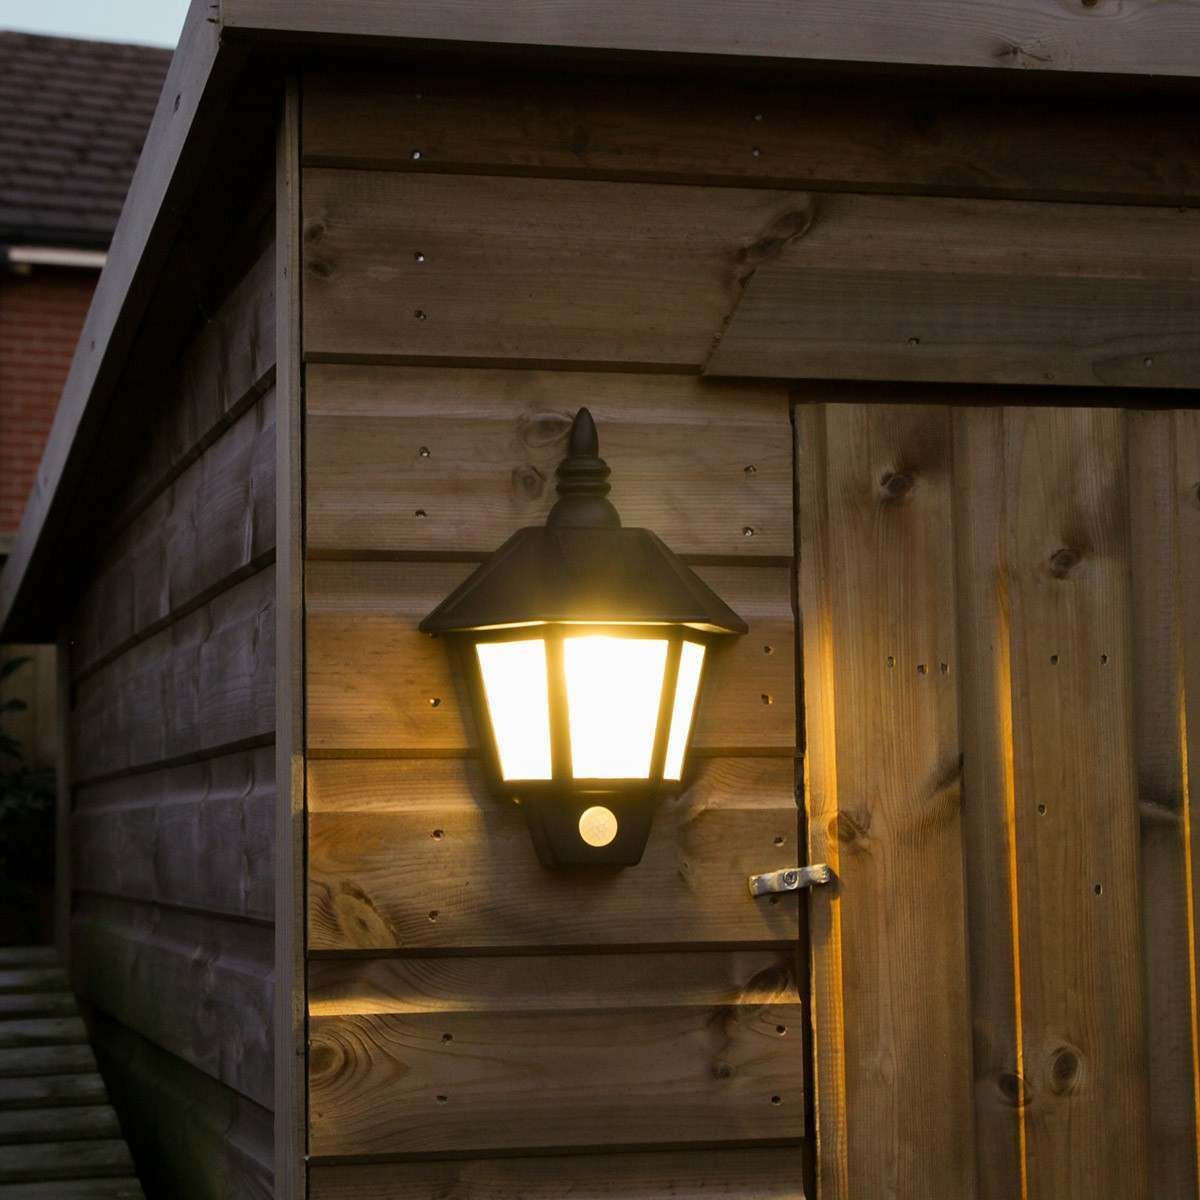 buy cheap outdoor security light compare lighting prices. Black Bedroom Furniture Sets. Home Design Ideas